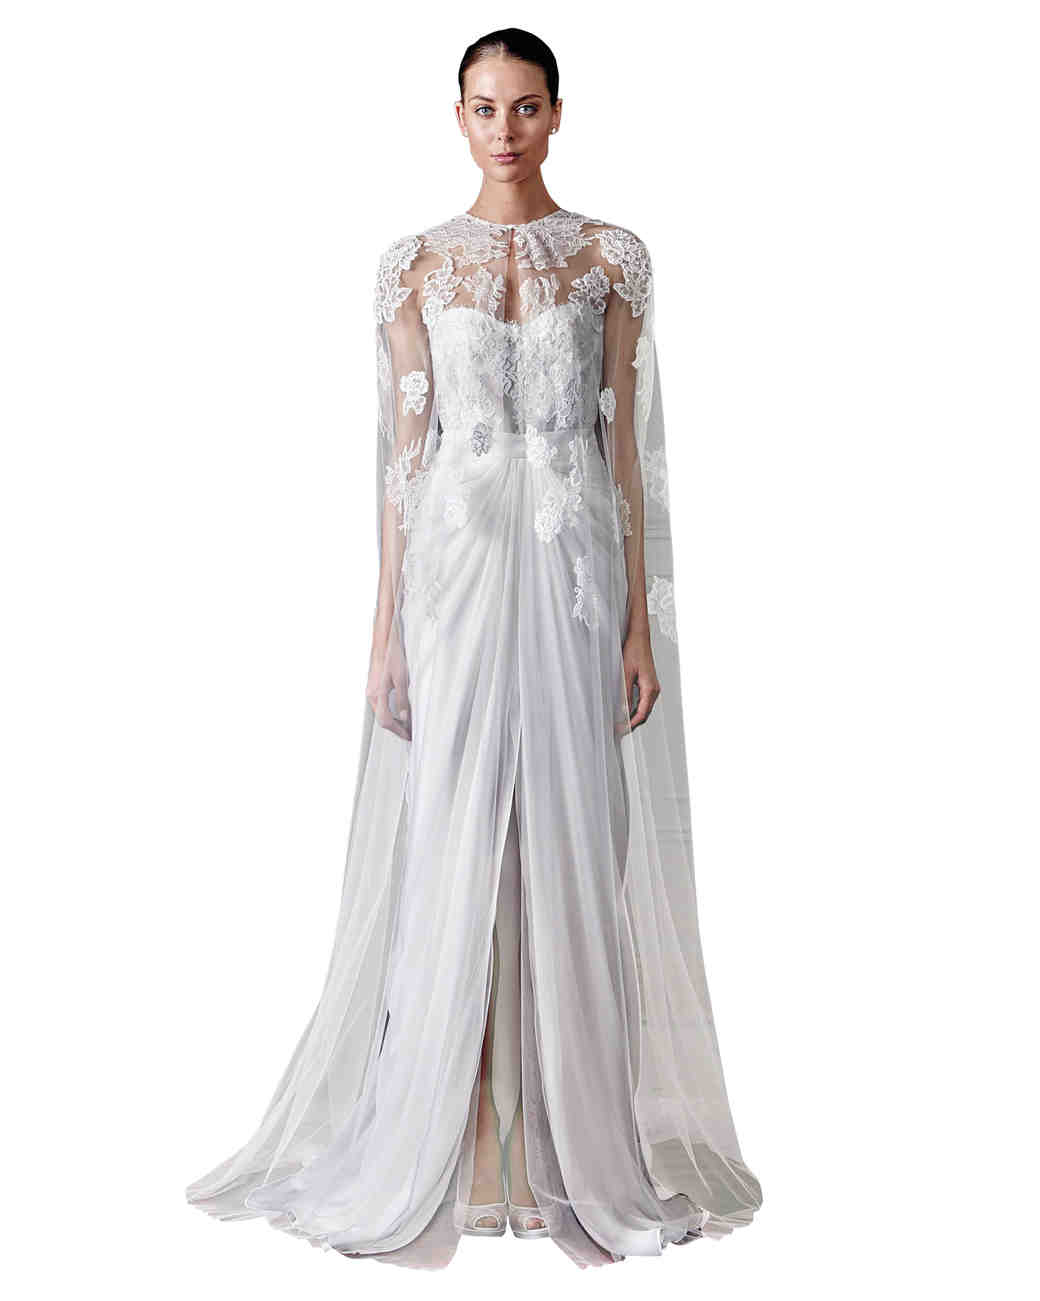 monique-lhuillier--s112480.jpg